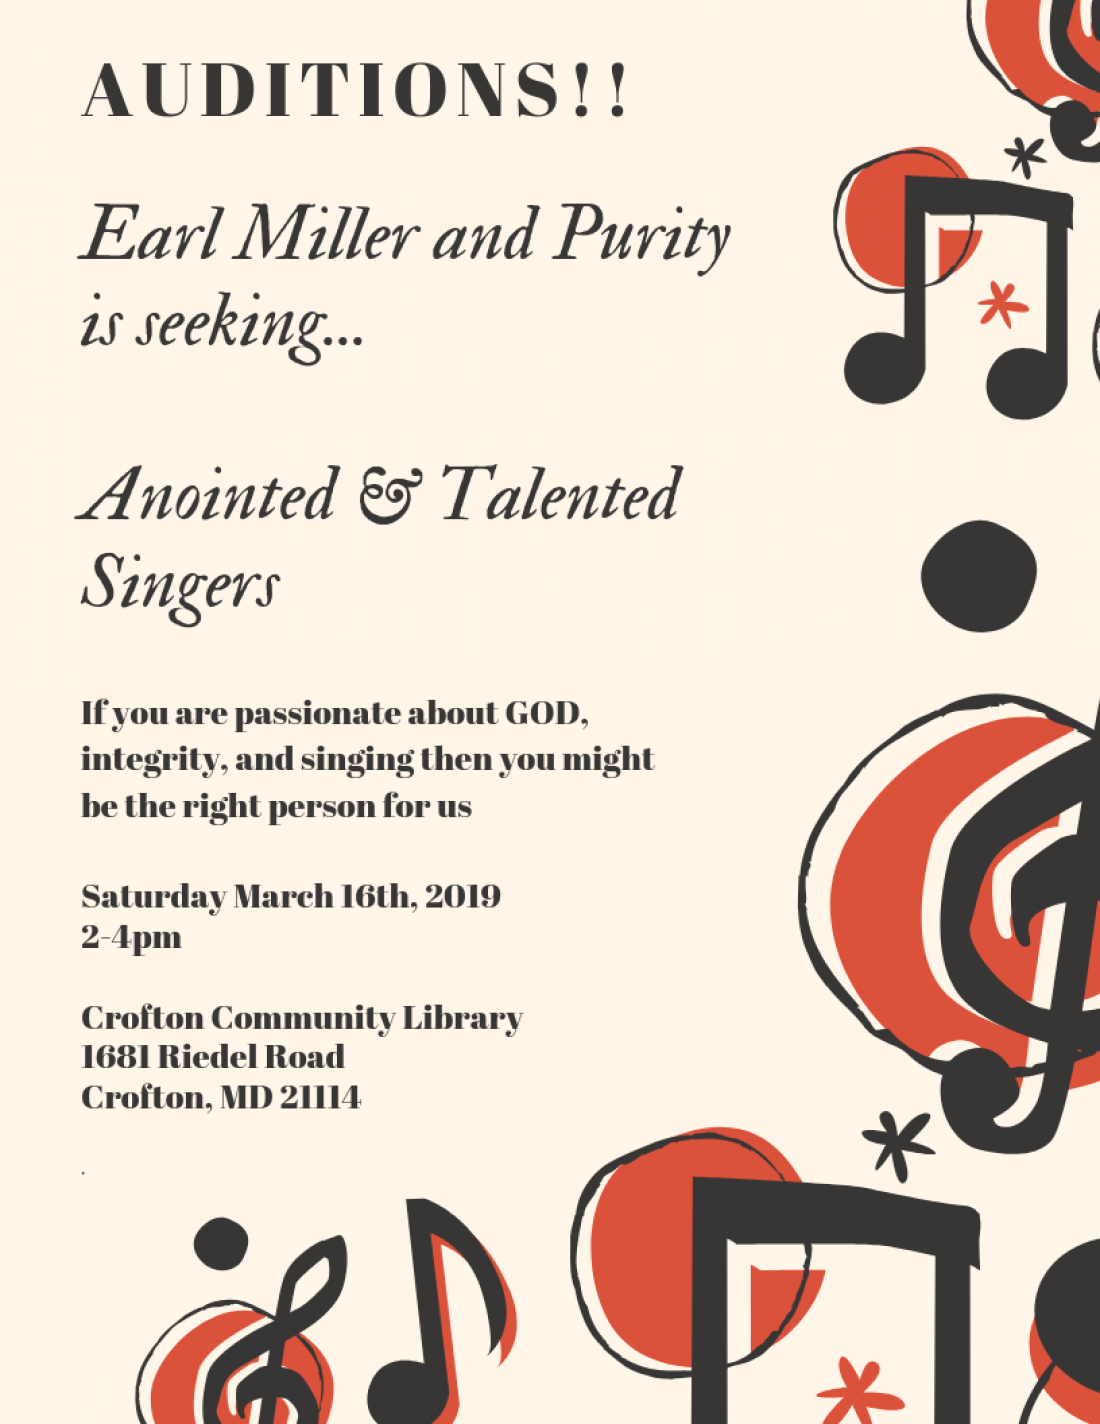 Earl Miller and Purity Auditions